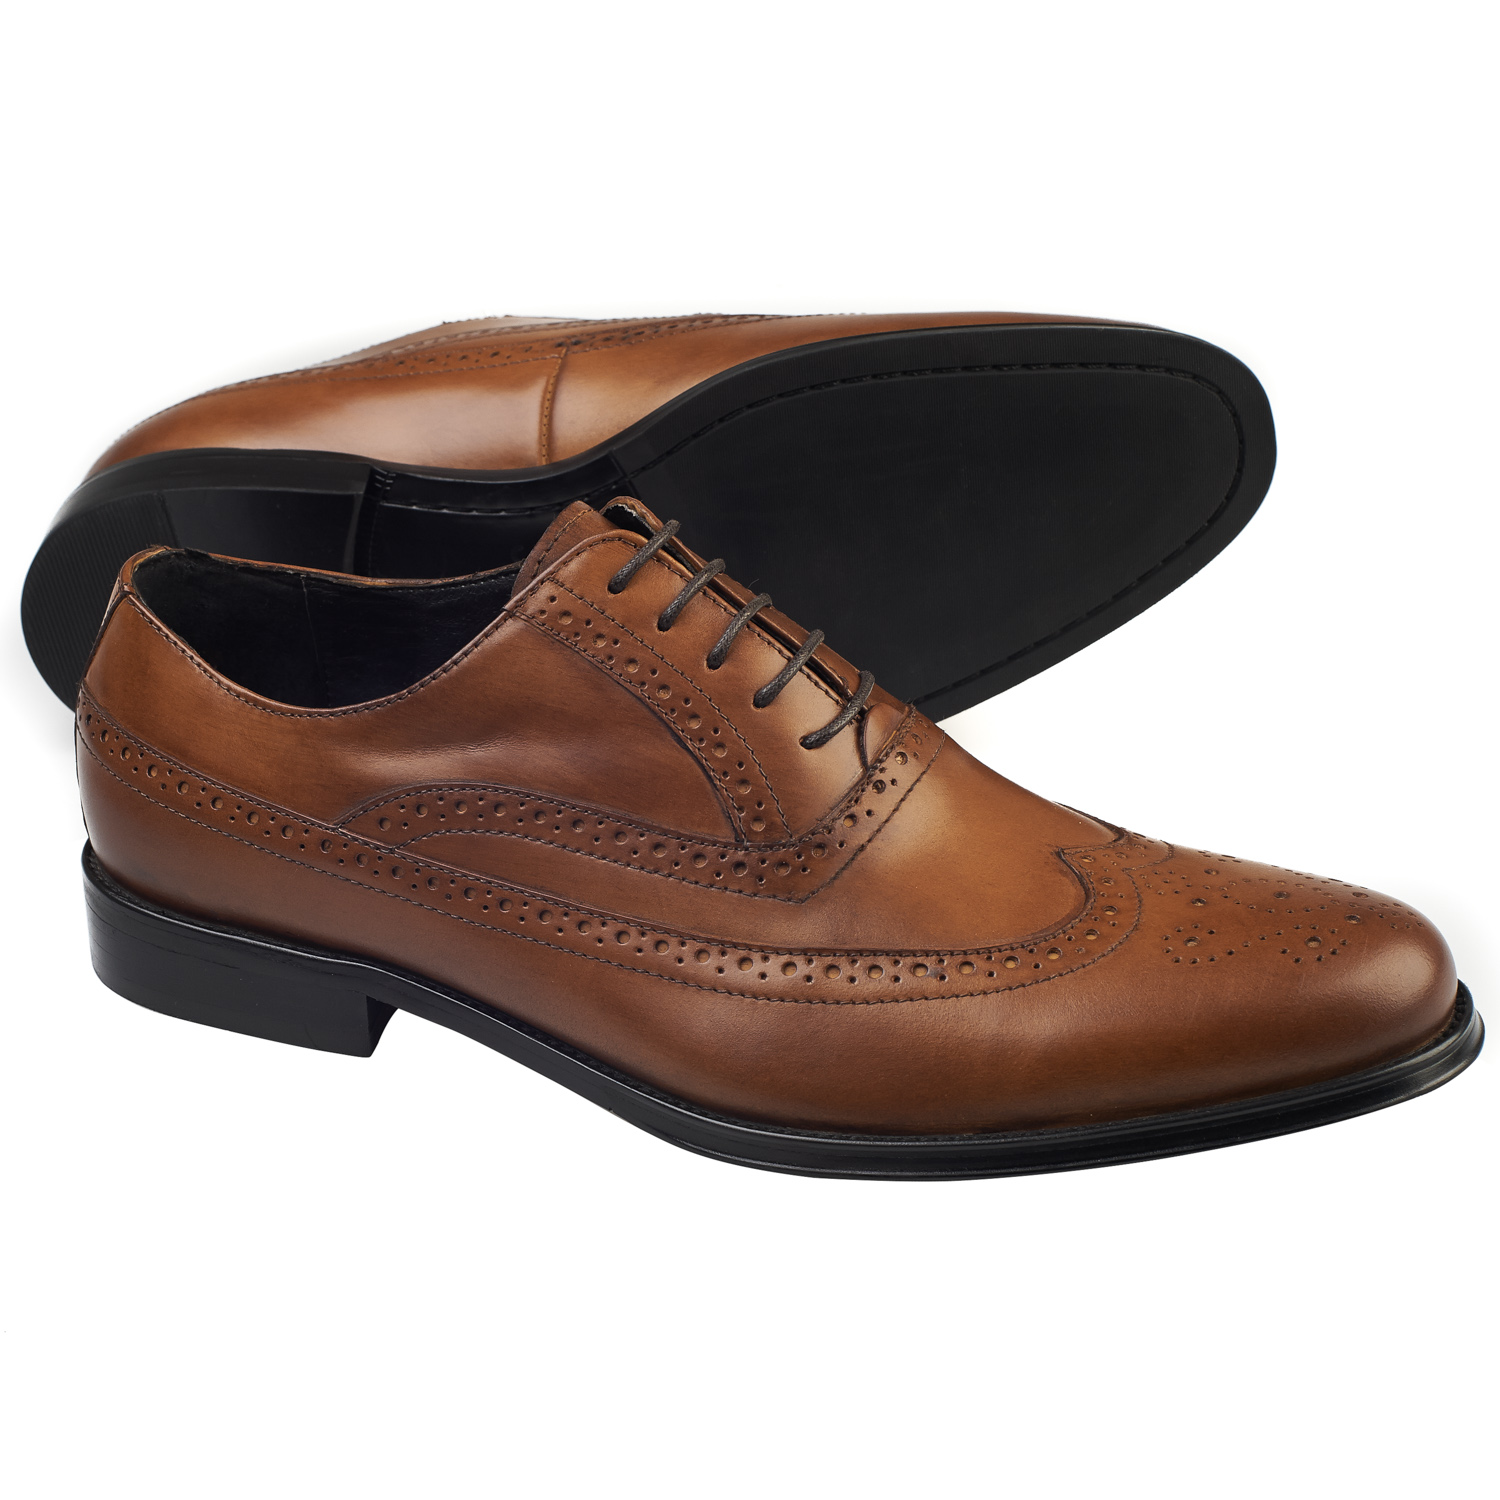 85f041f35f1 Tan day Brogue shoe